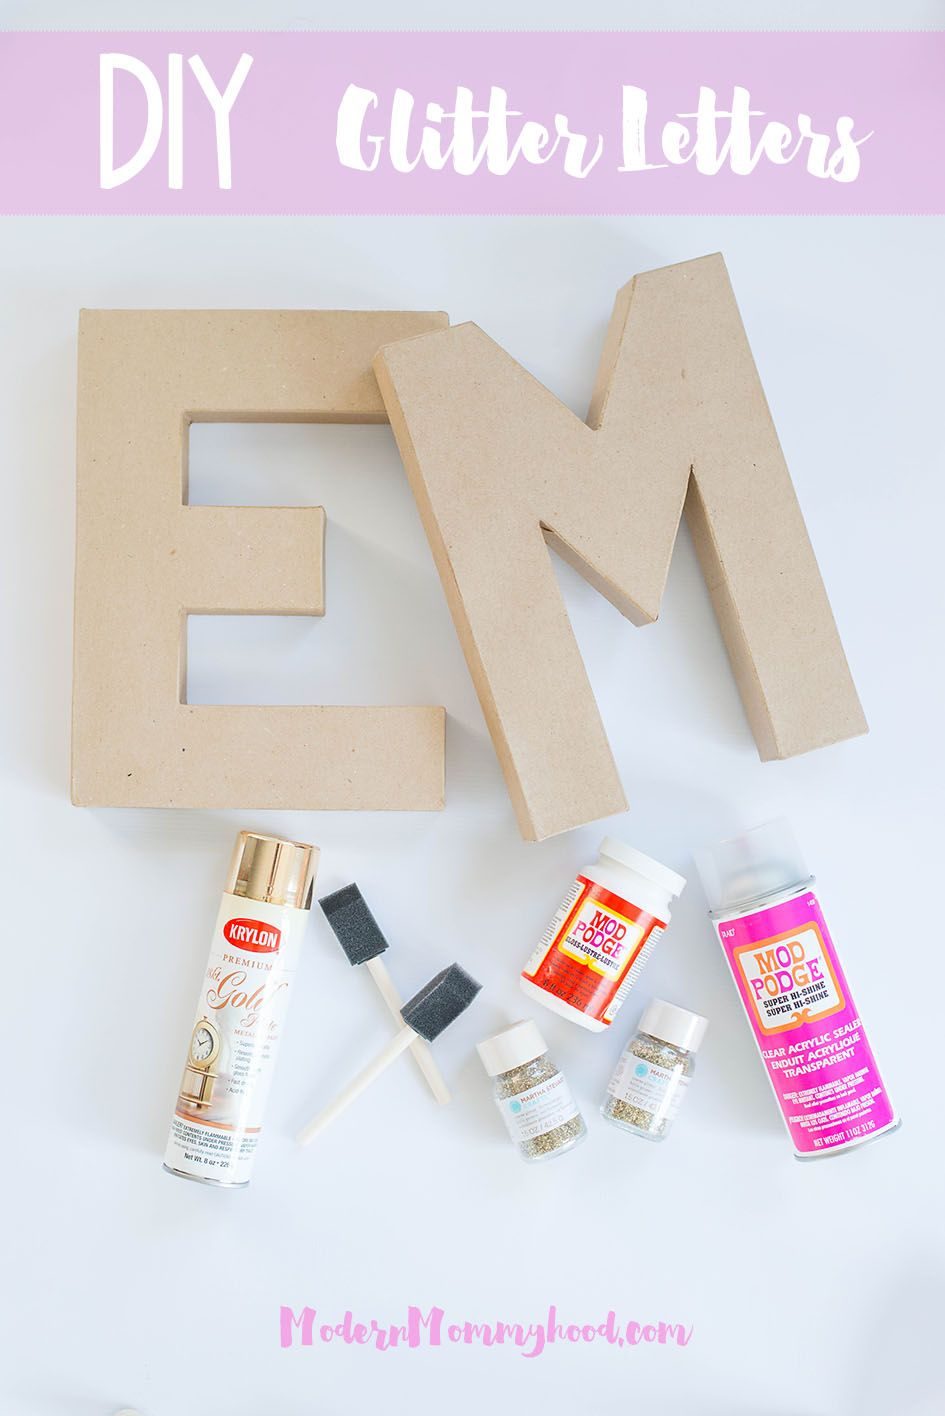 Diy Glitter Letters A Super Easy Tutorial To Create Sparkly For Your Home Or Nursery